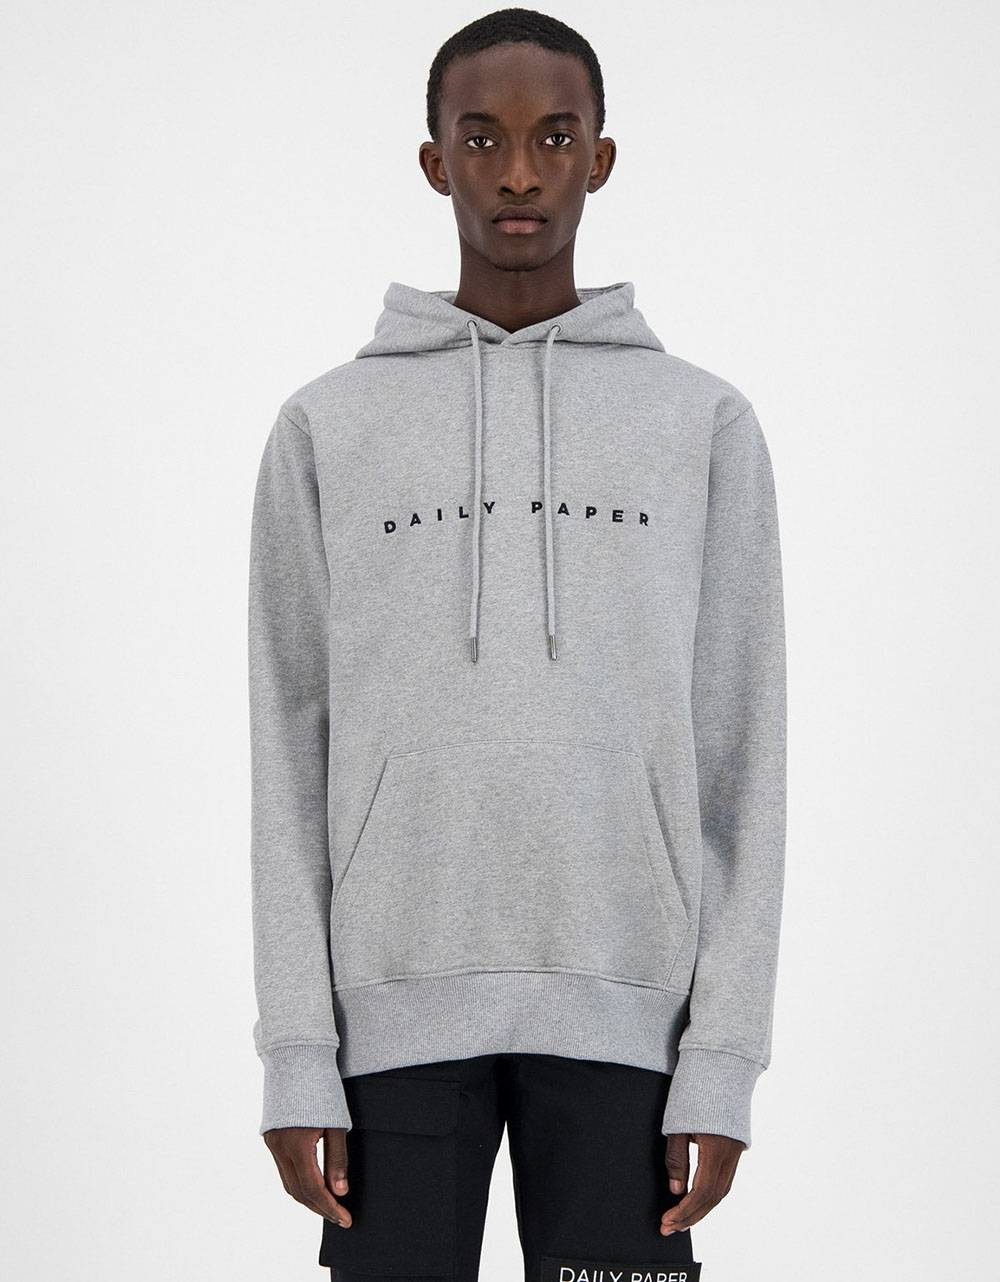 Daily Paper Alias Hoodie - Grey/Black DAILY PAPER Sweater 109,00€